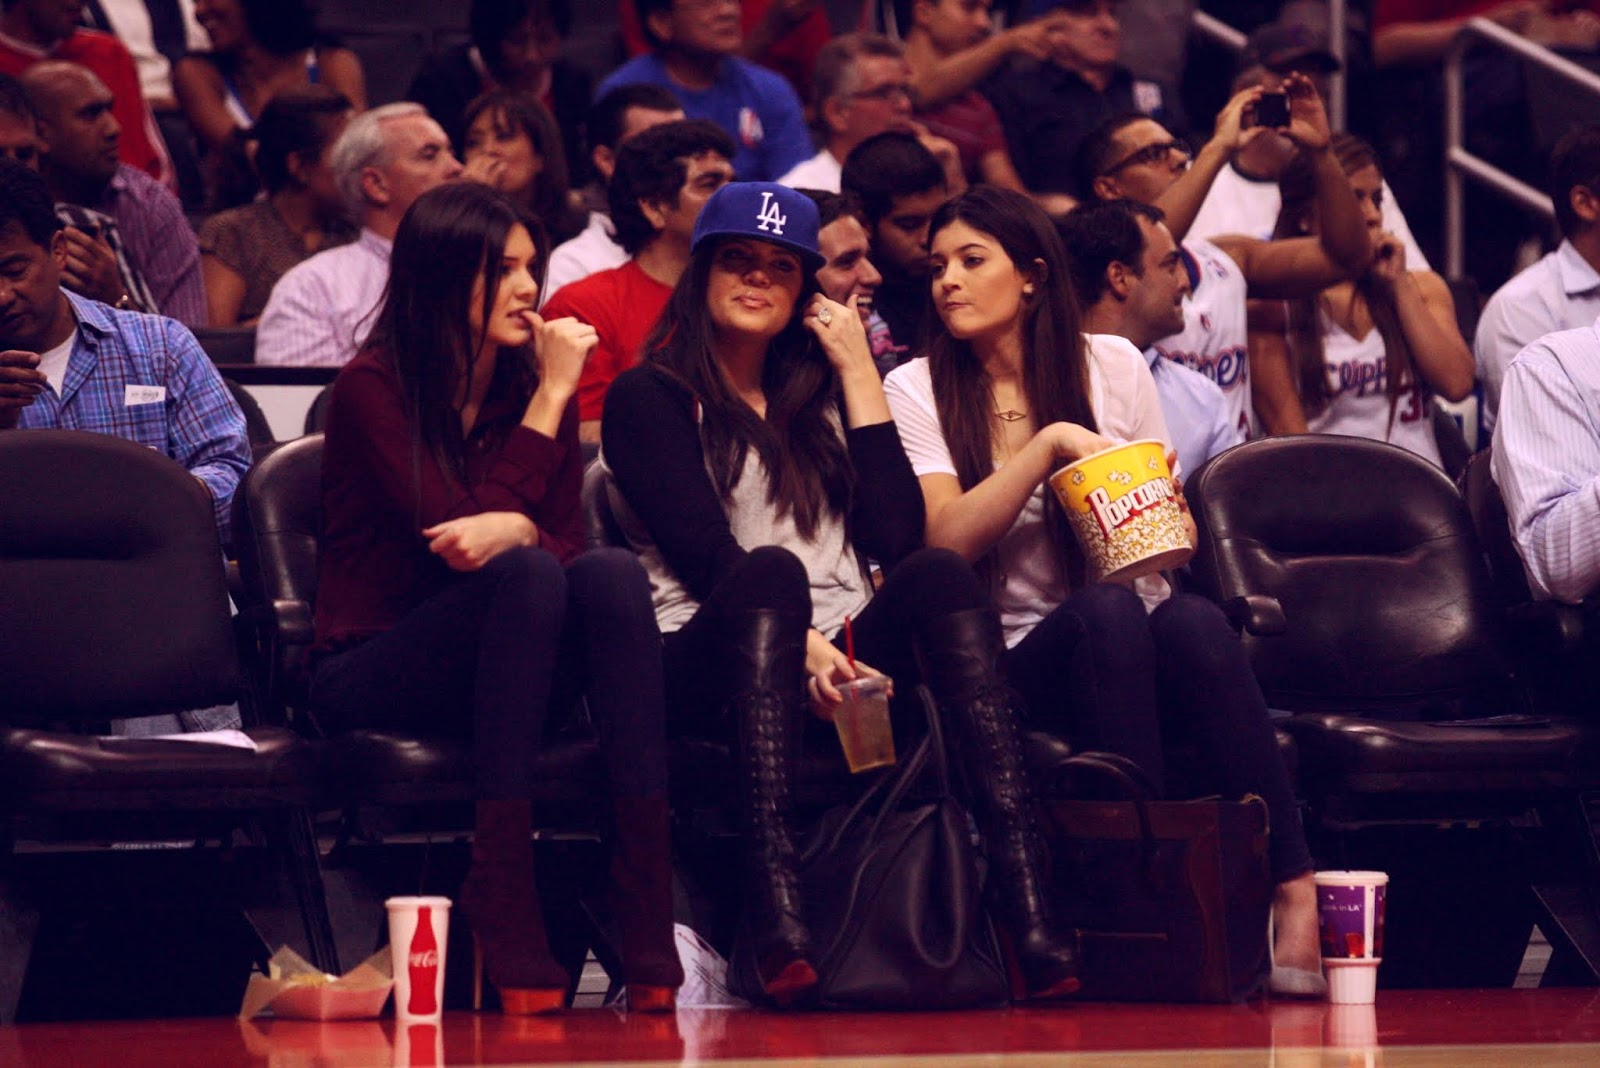 06 - Watching The Los Angeles Clippers Game on October 17, 2012